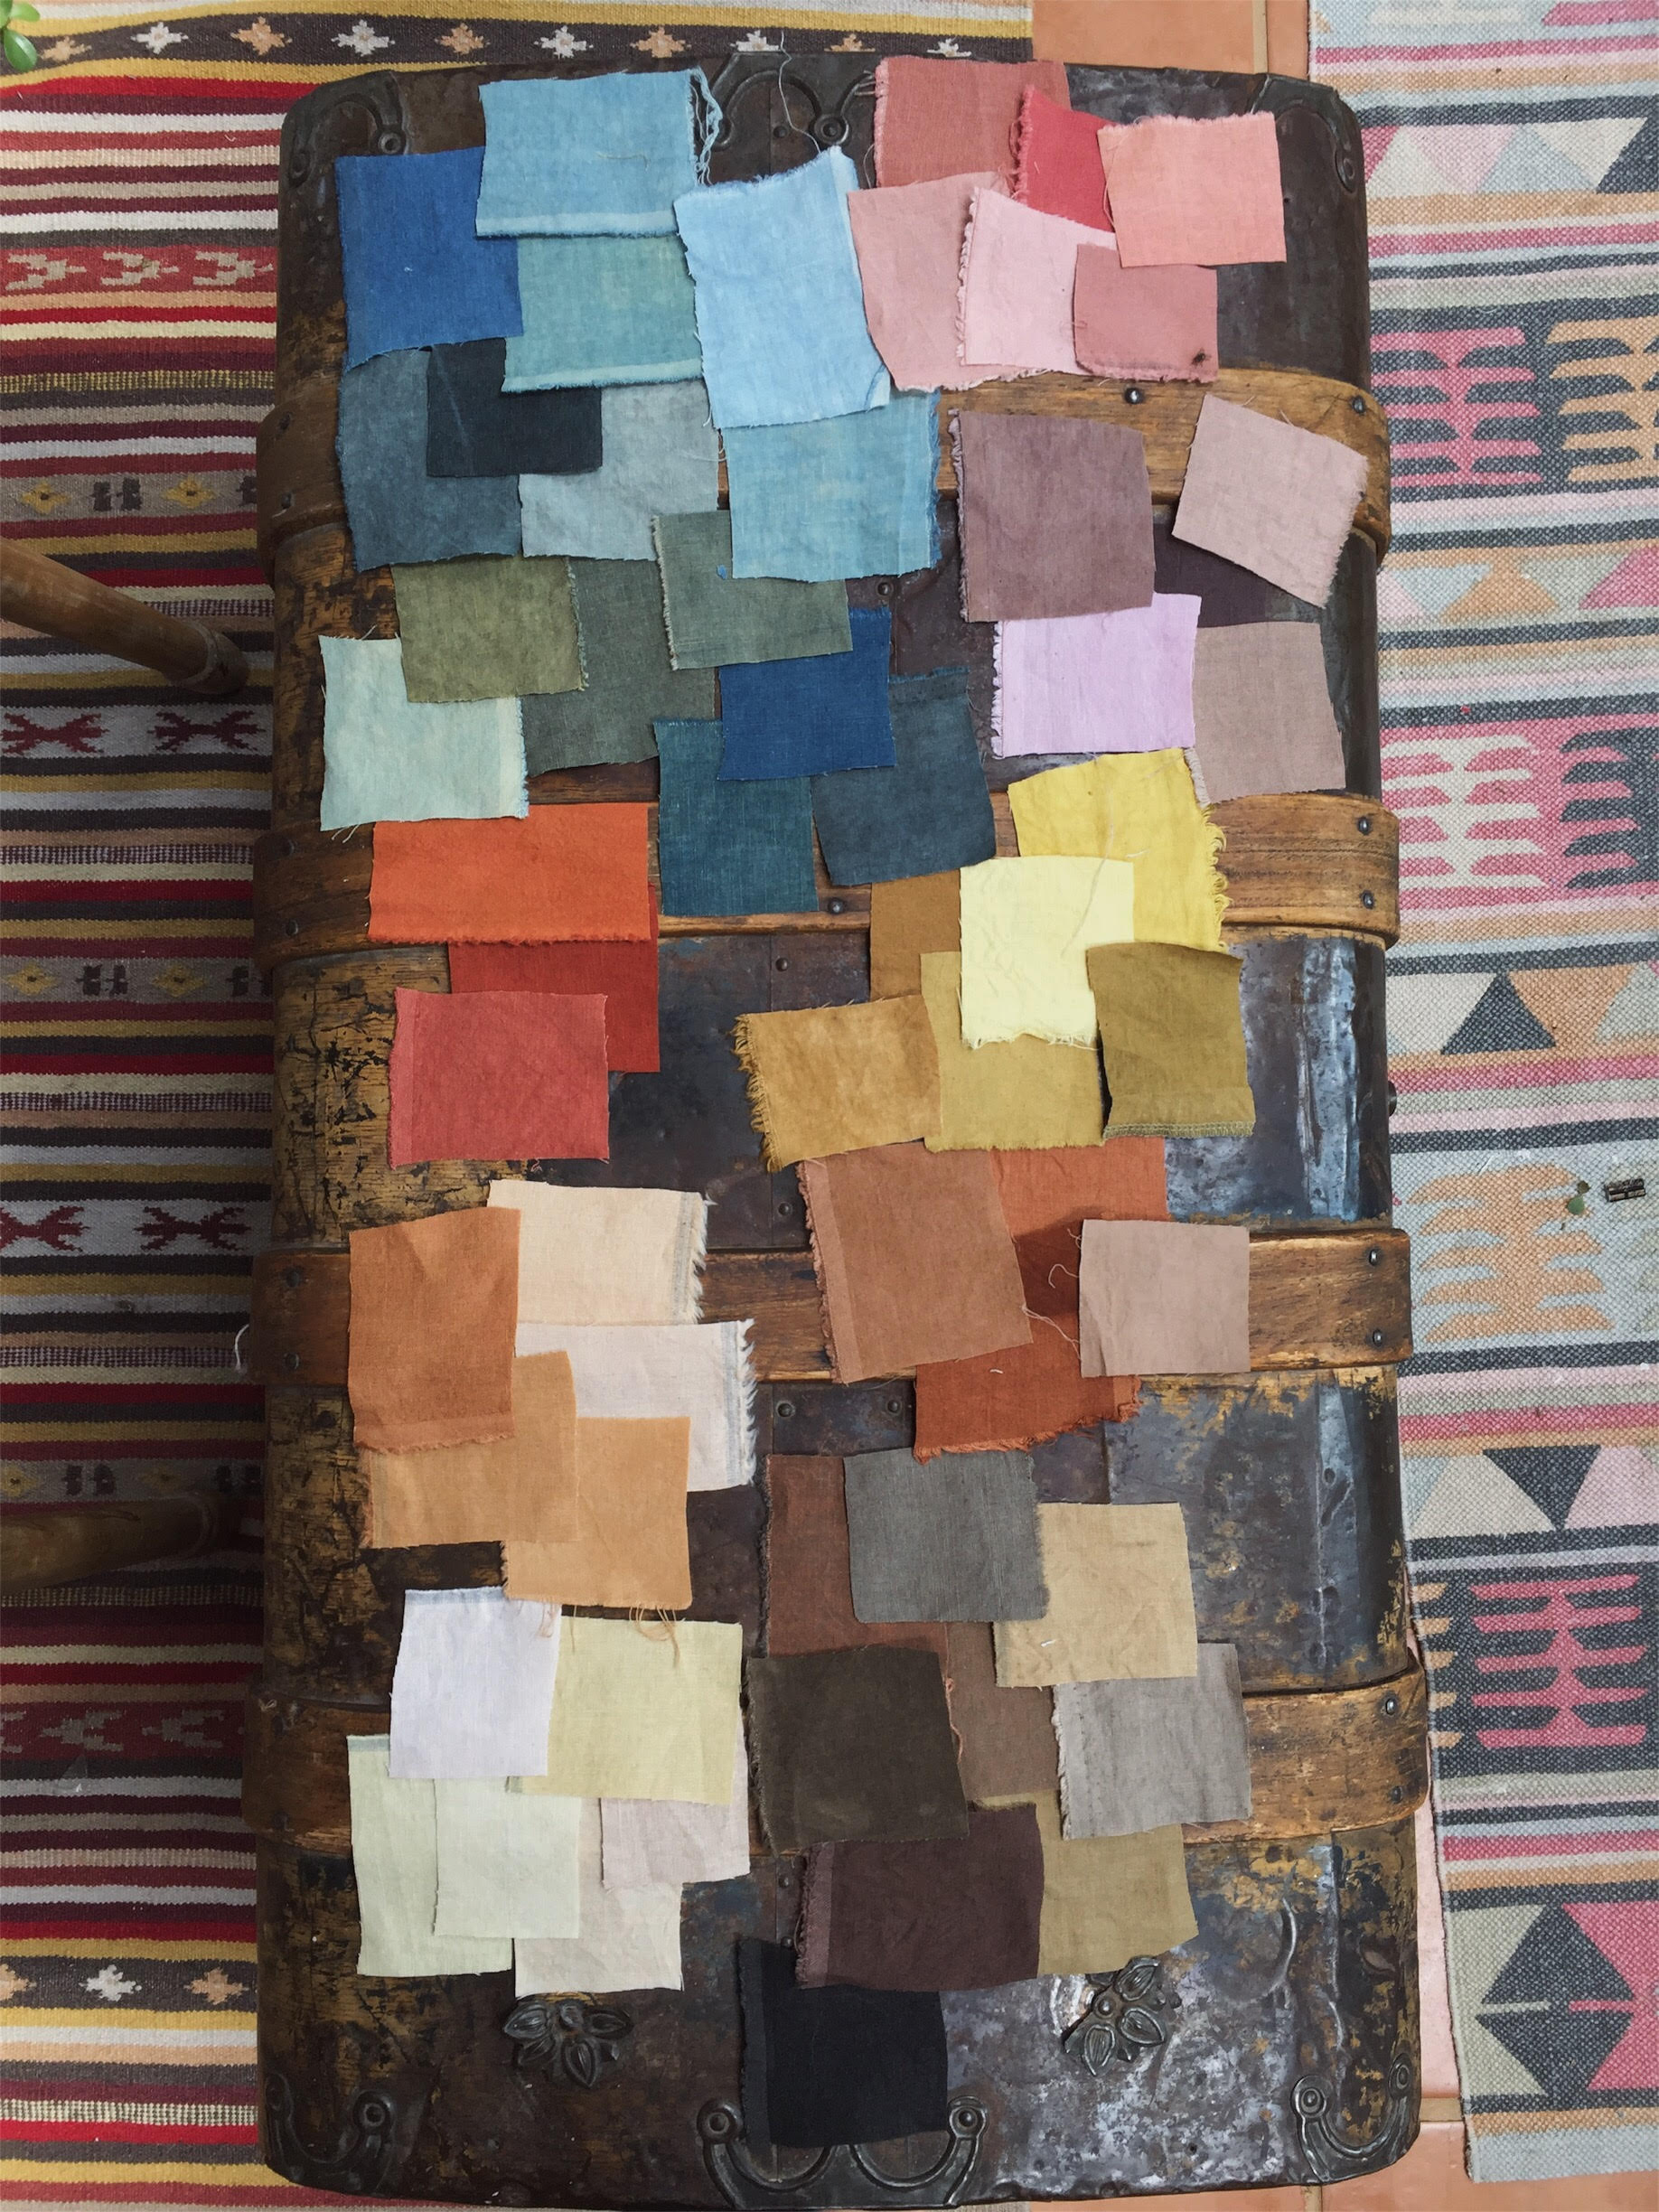 The palette I created over last summer. The broadest palette I've achieved yet, and the first success I had with a true black.